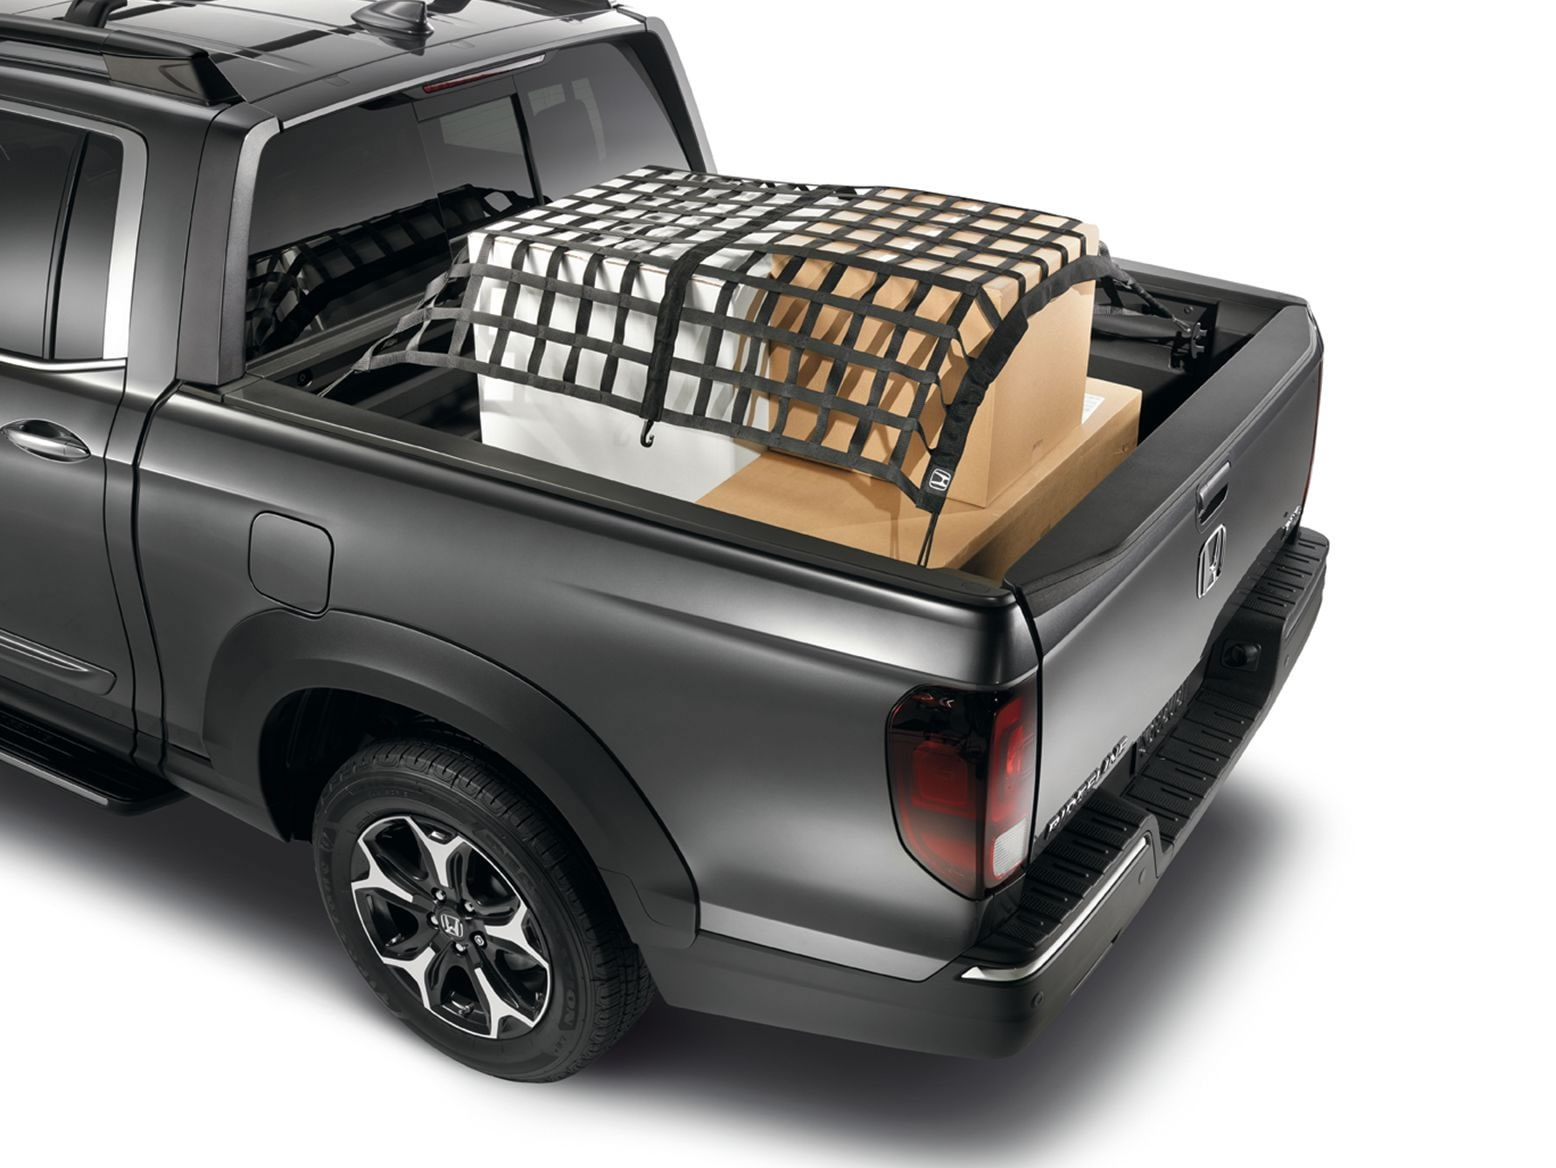 CARGO NET-TRUCK BED (part number:)